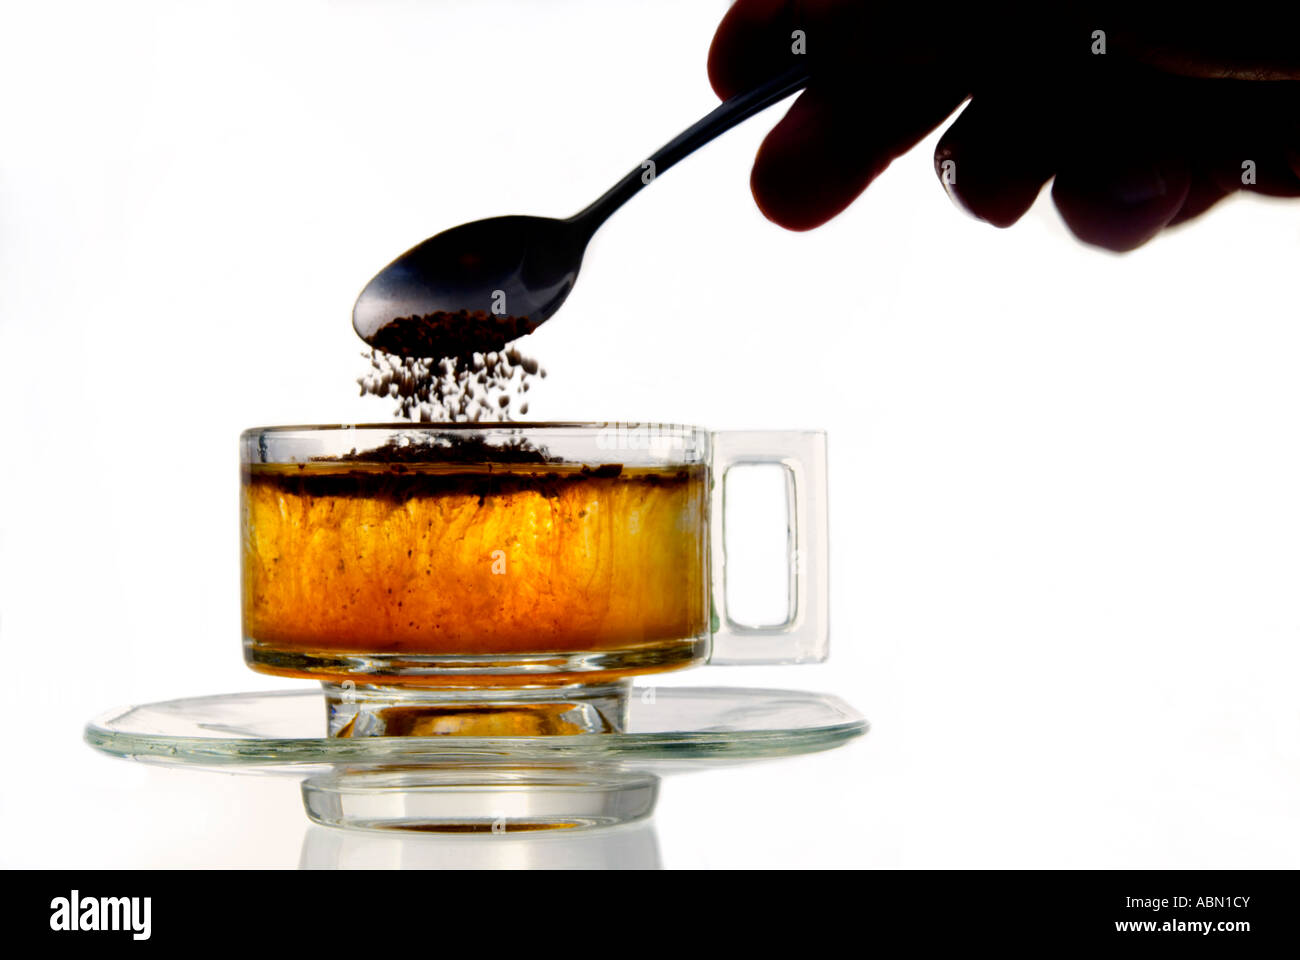 Instant coffee added to water in a glass cup - Stock Image